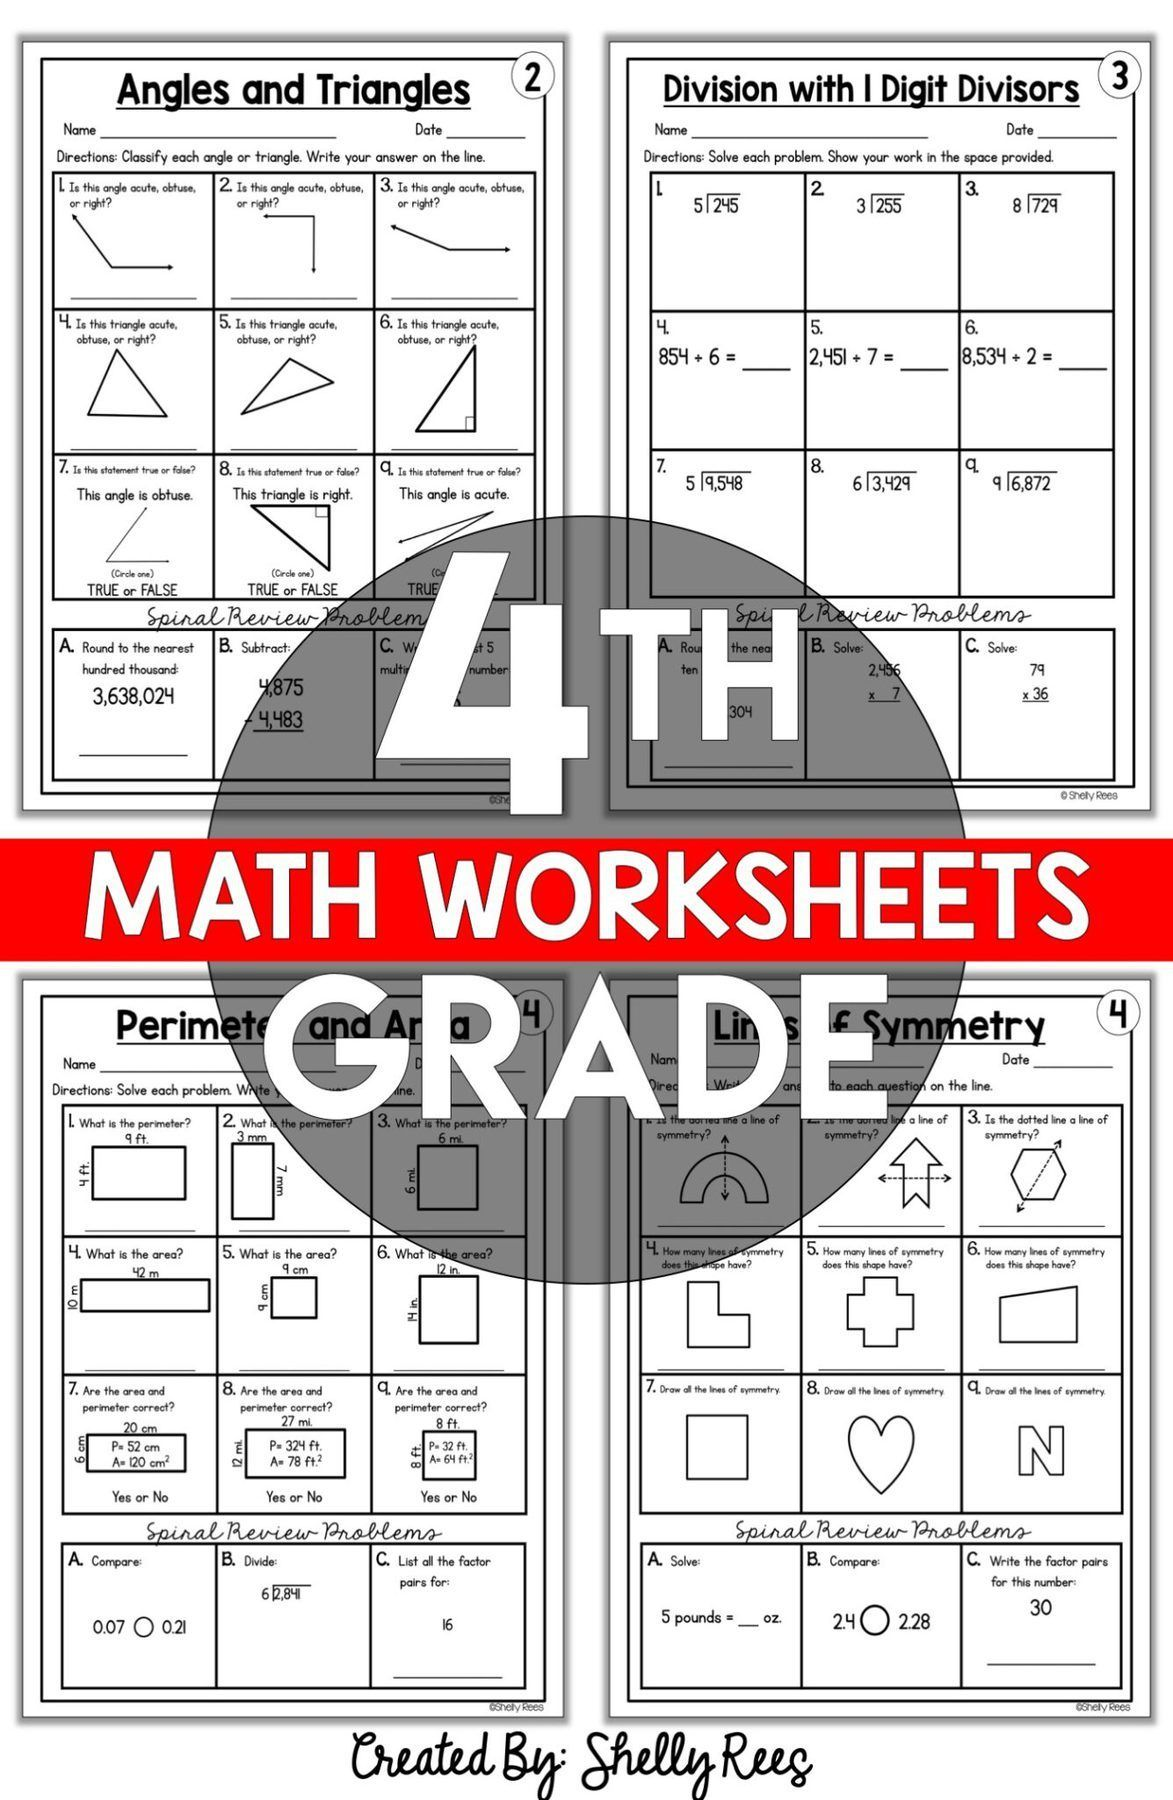 small resolution of 4th Grade Math Worksheets Free and Printable - Appletastic Learning   4th  grade math worksheets